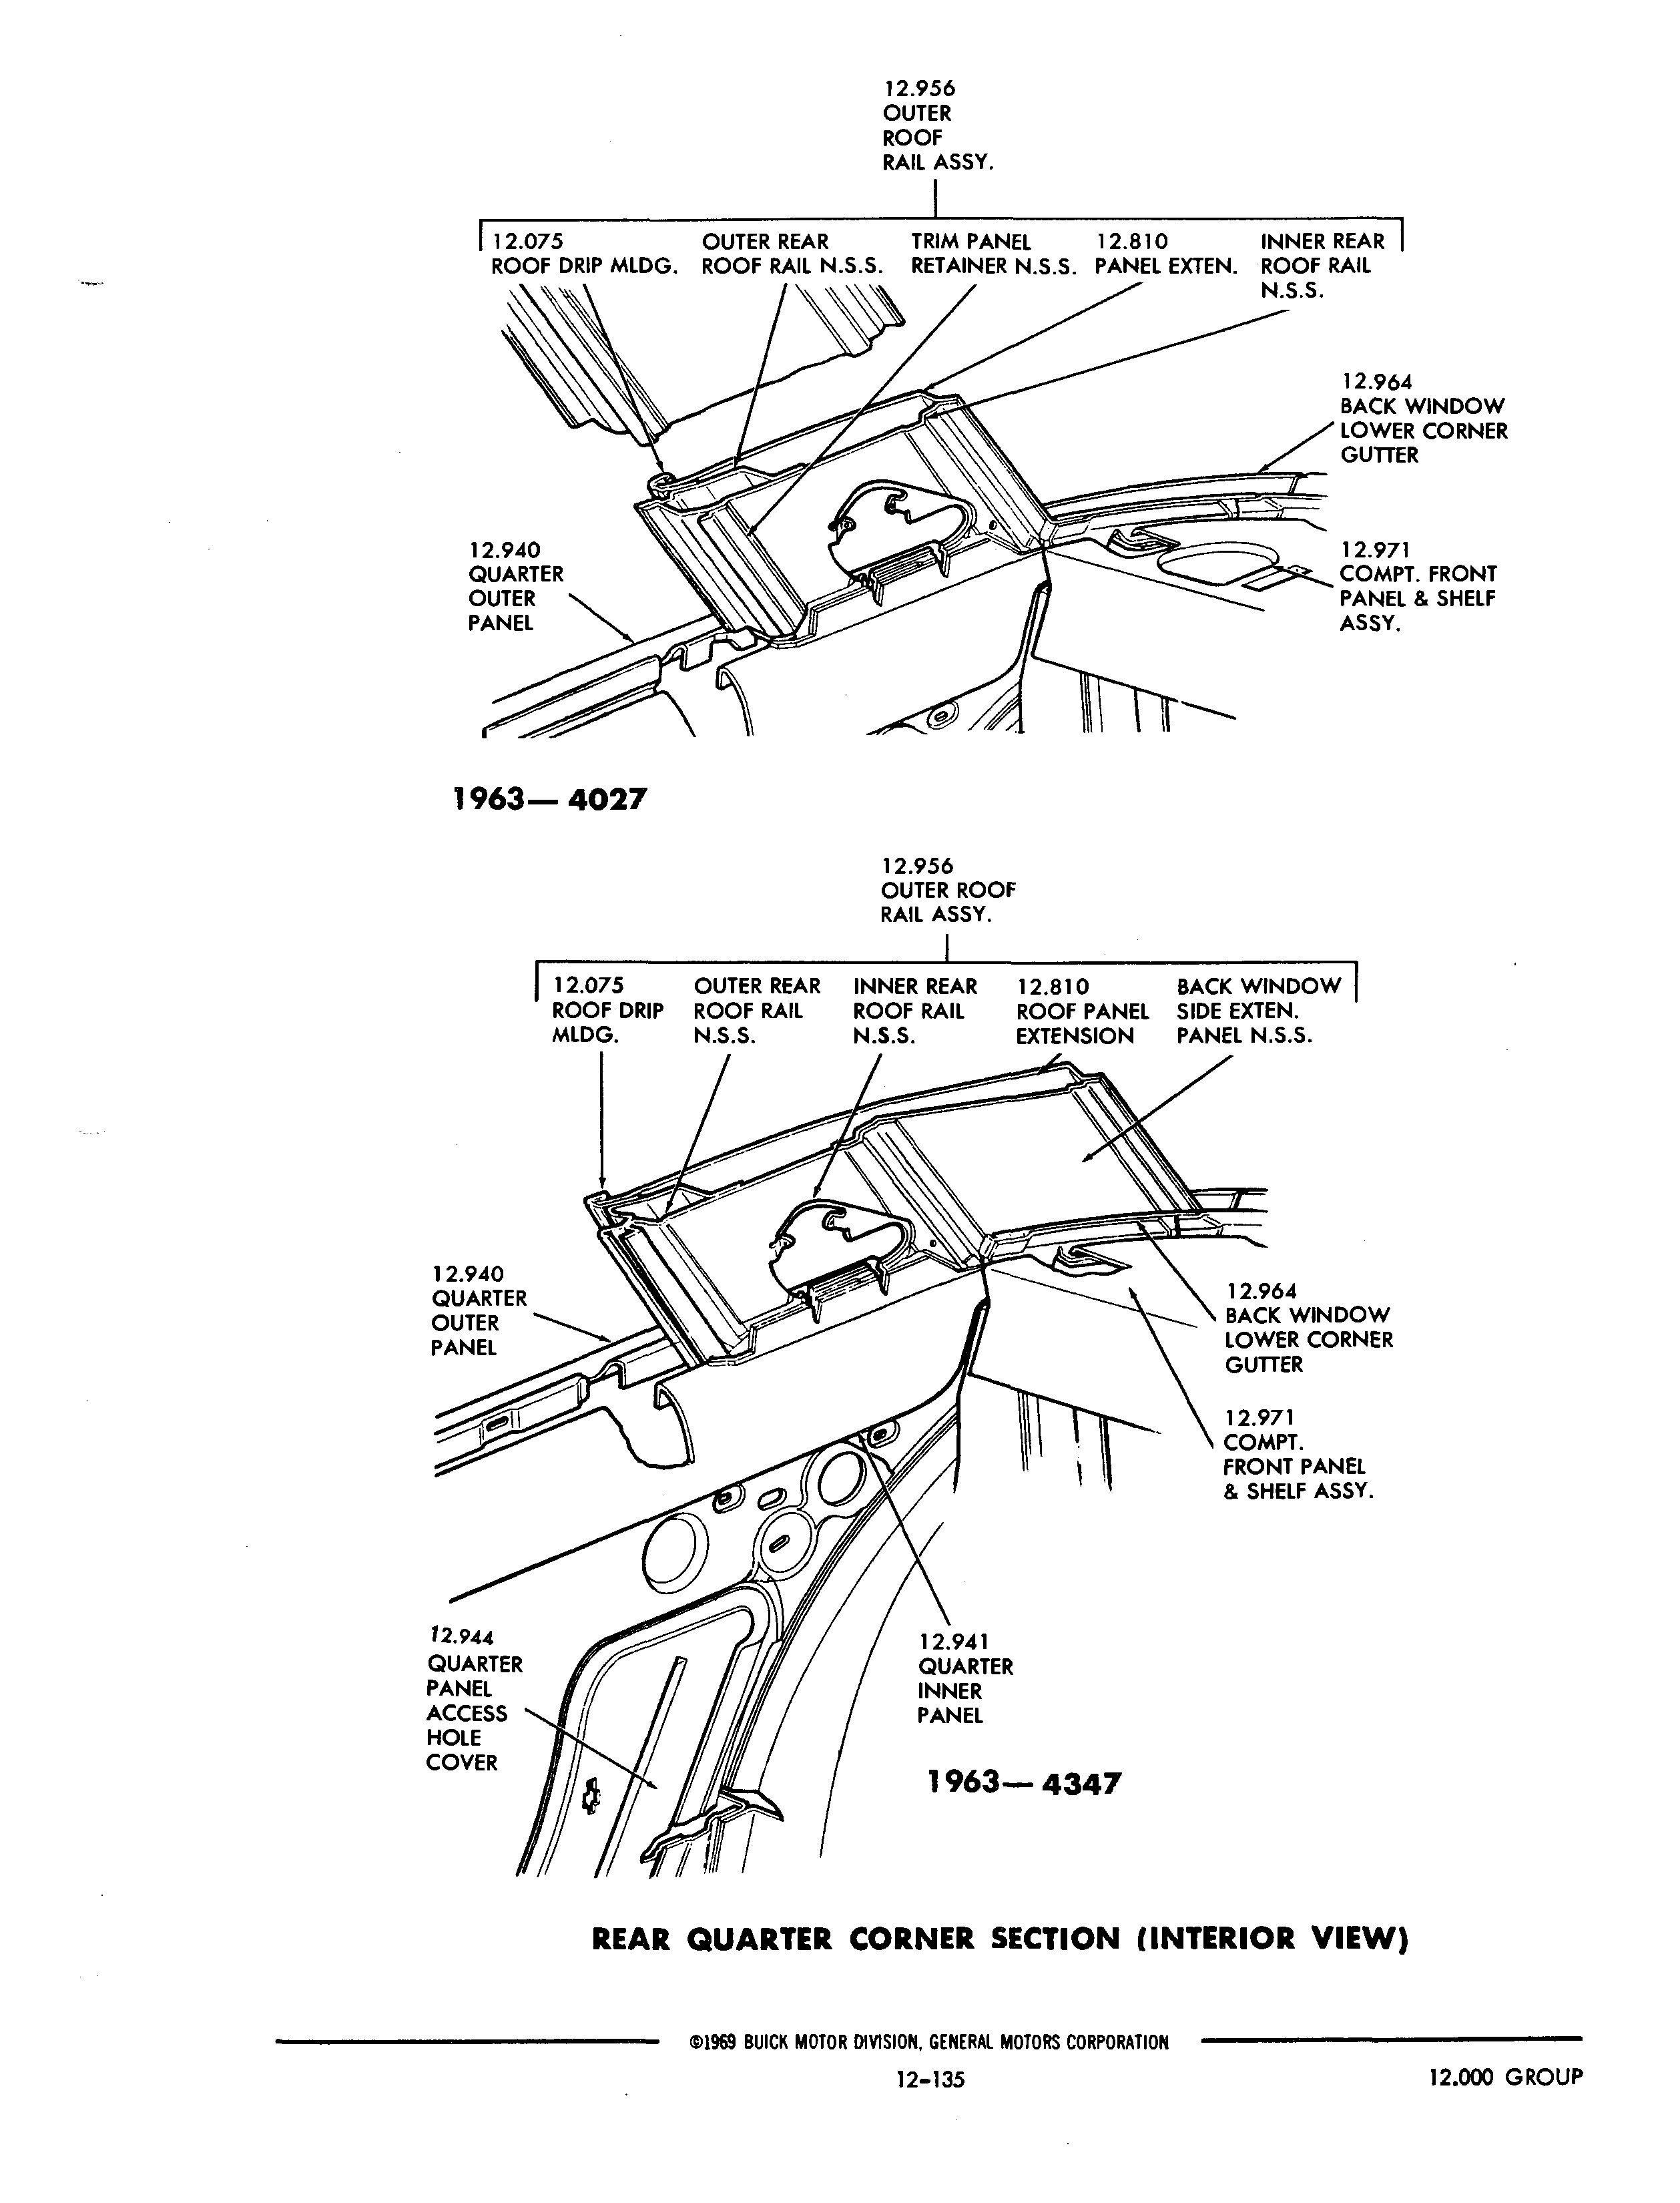 72 buick ignition switch wiring diagram